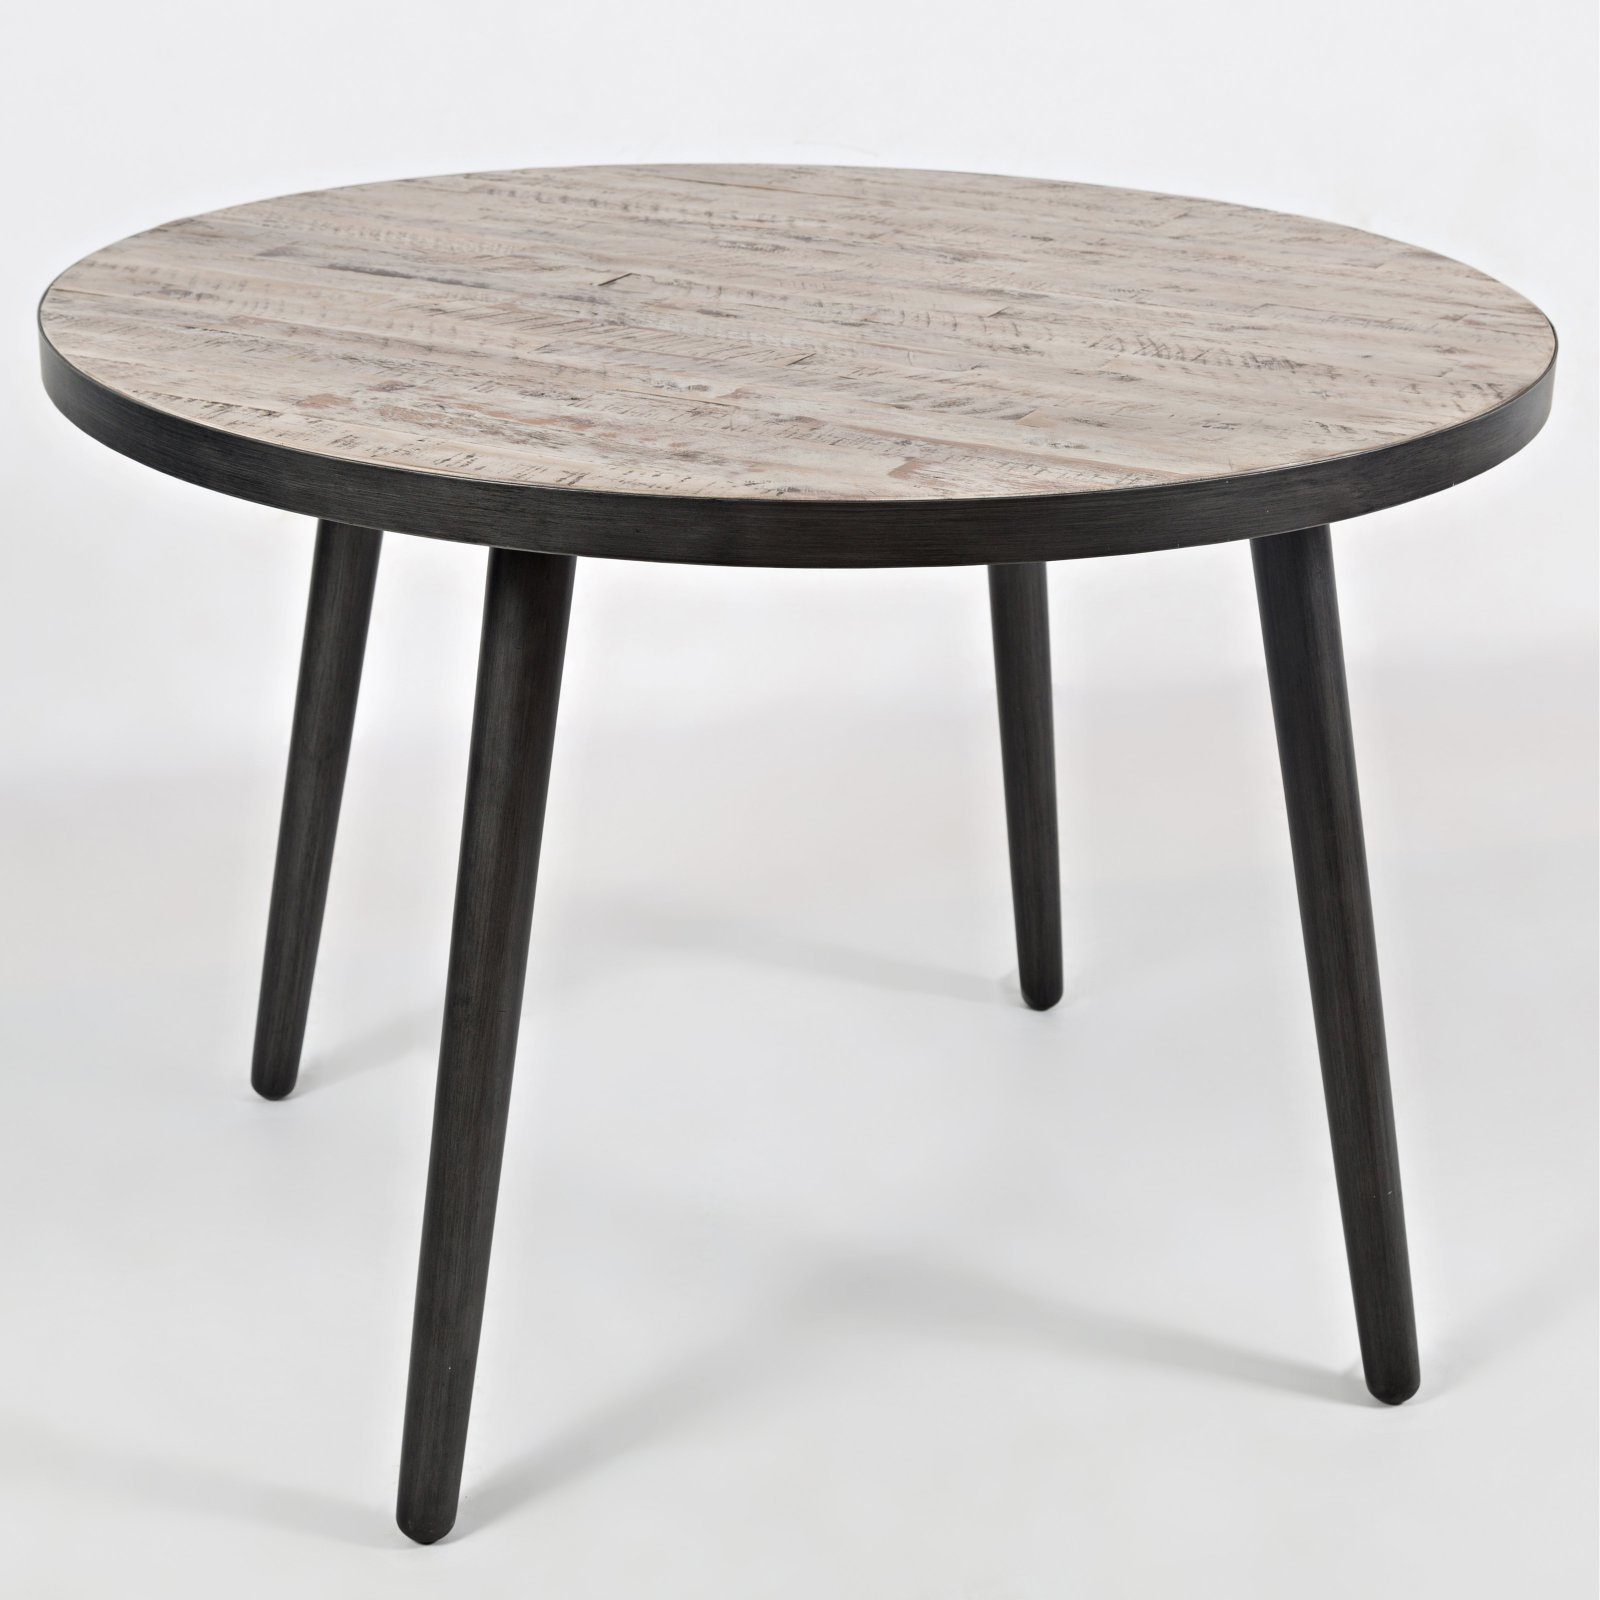 Jofran American Retrospective 42 in. Round Dining Table